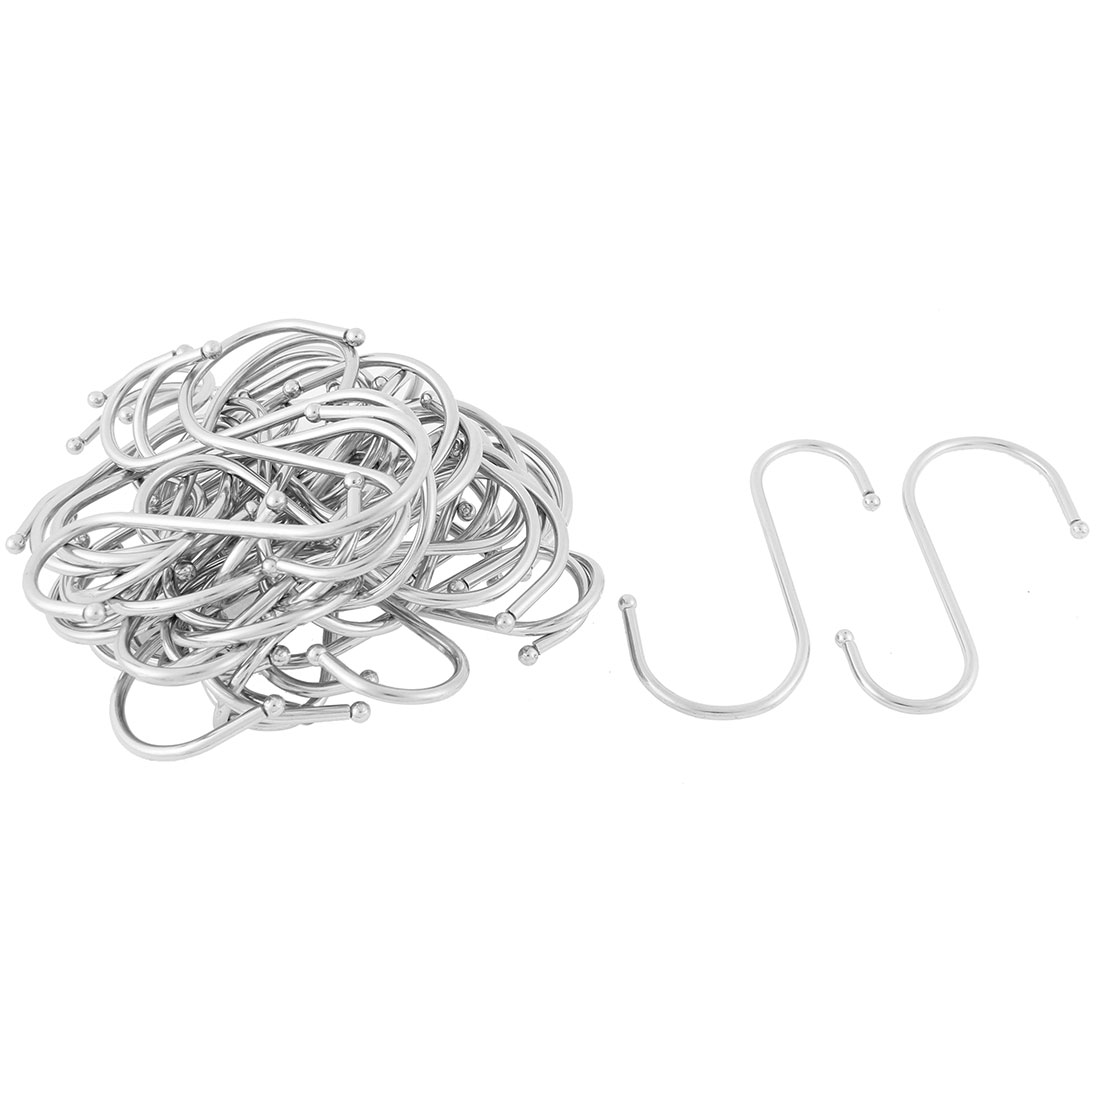 Bedroom Stainless Steel S Shaped Hooks Hangers Holder 4 Inch Long 40pcs